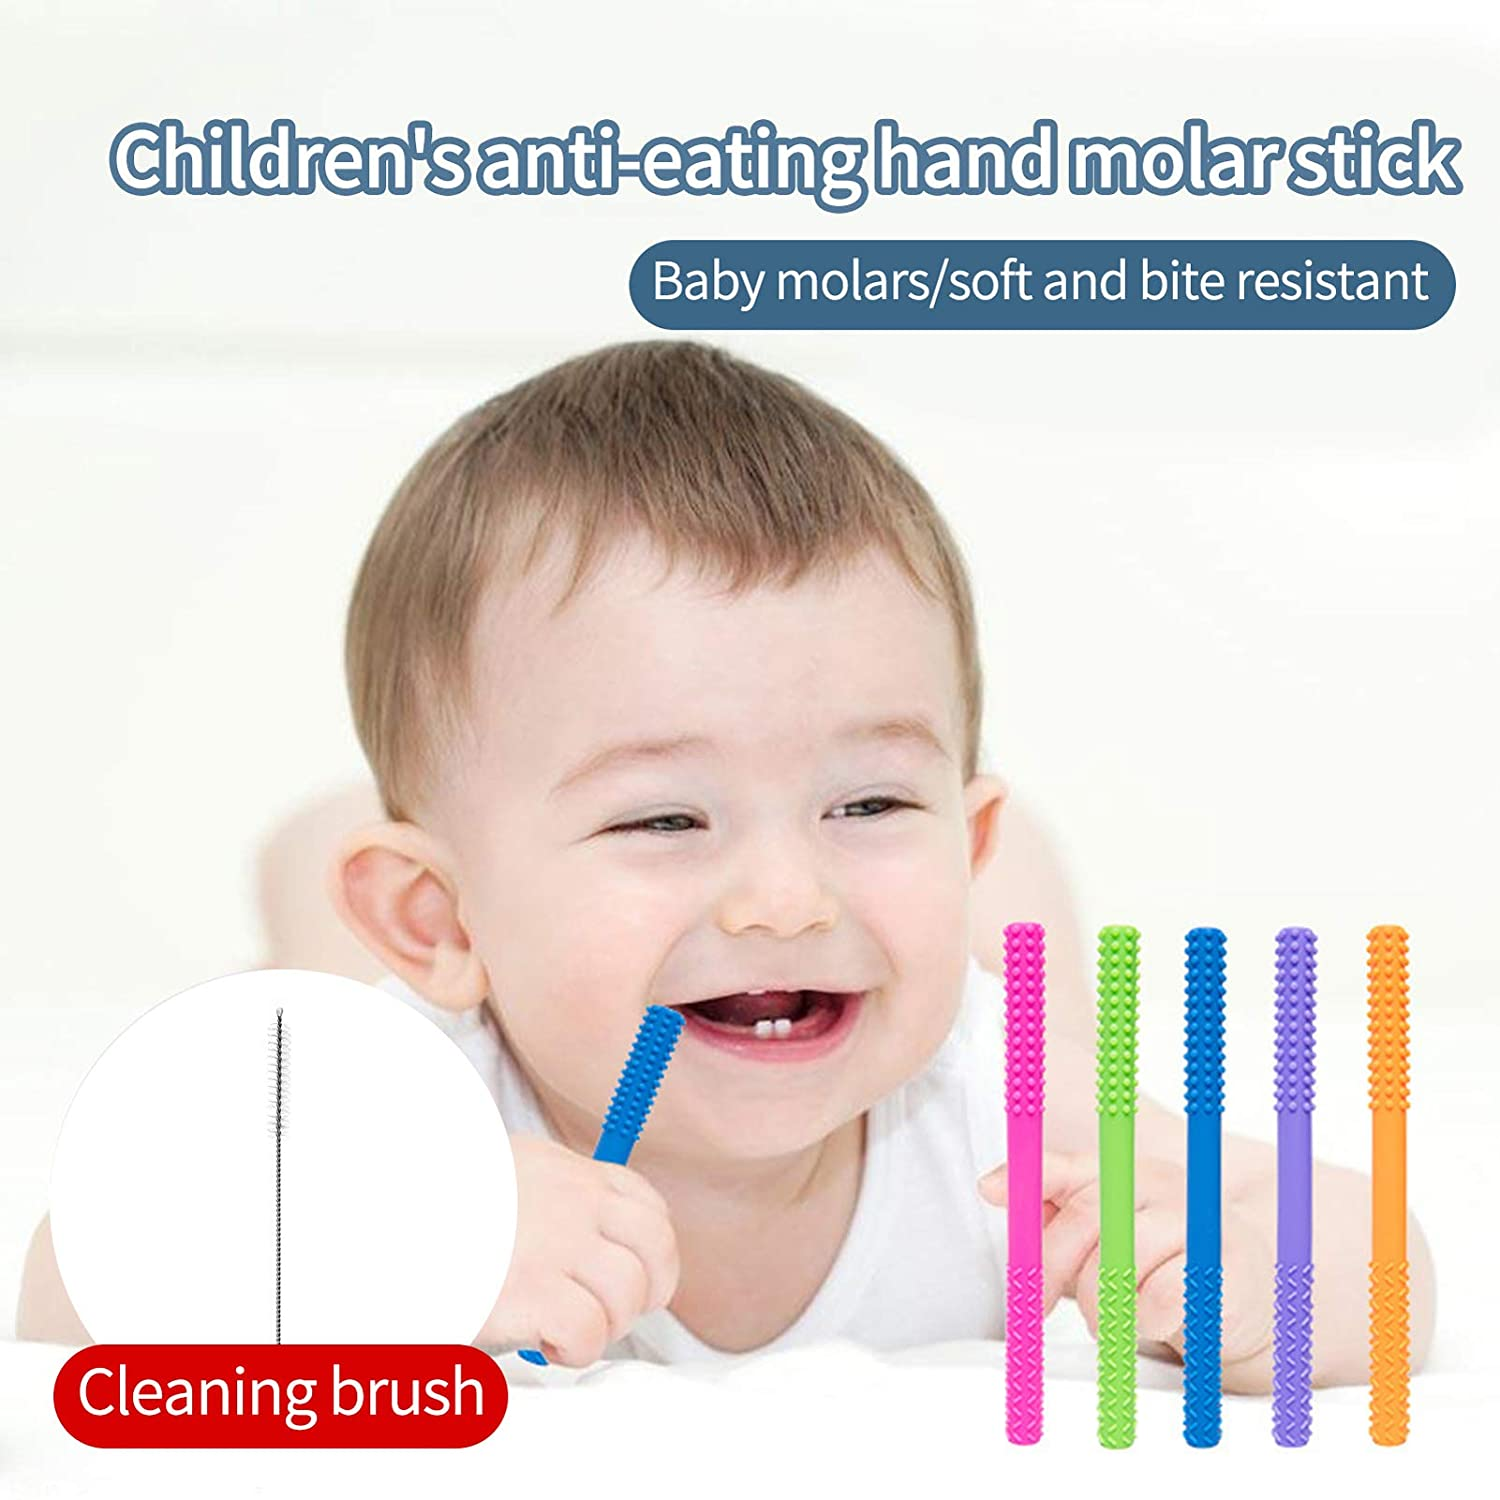 Baby Teething Tubes 4 Pack Teething Toys for Babies 0-6 Months,Teething Tubes with a Cleaning Brush 4 Colors Mixed